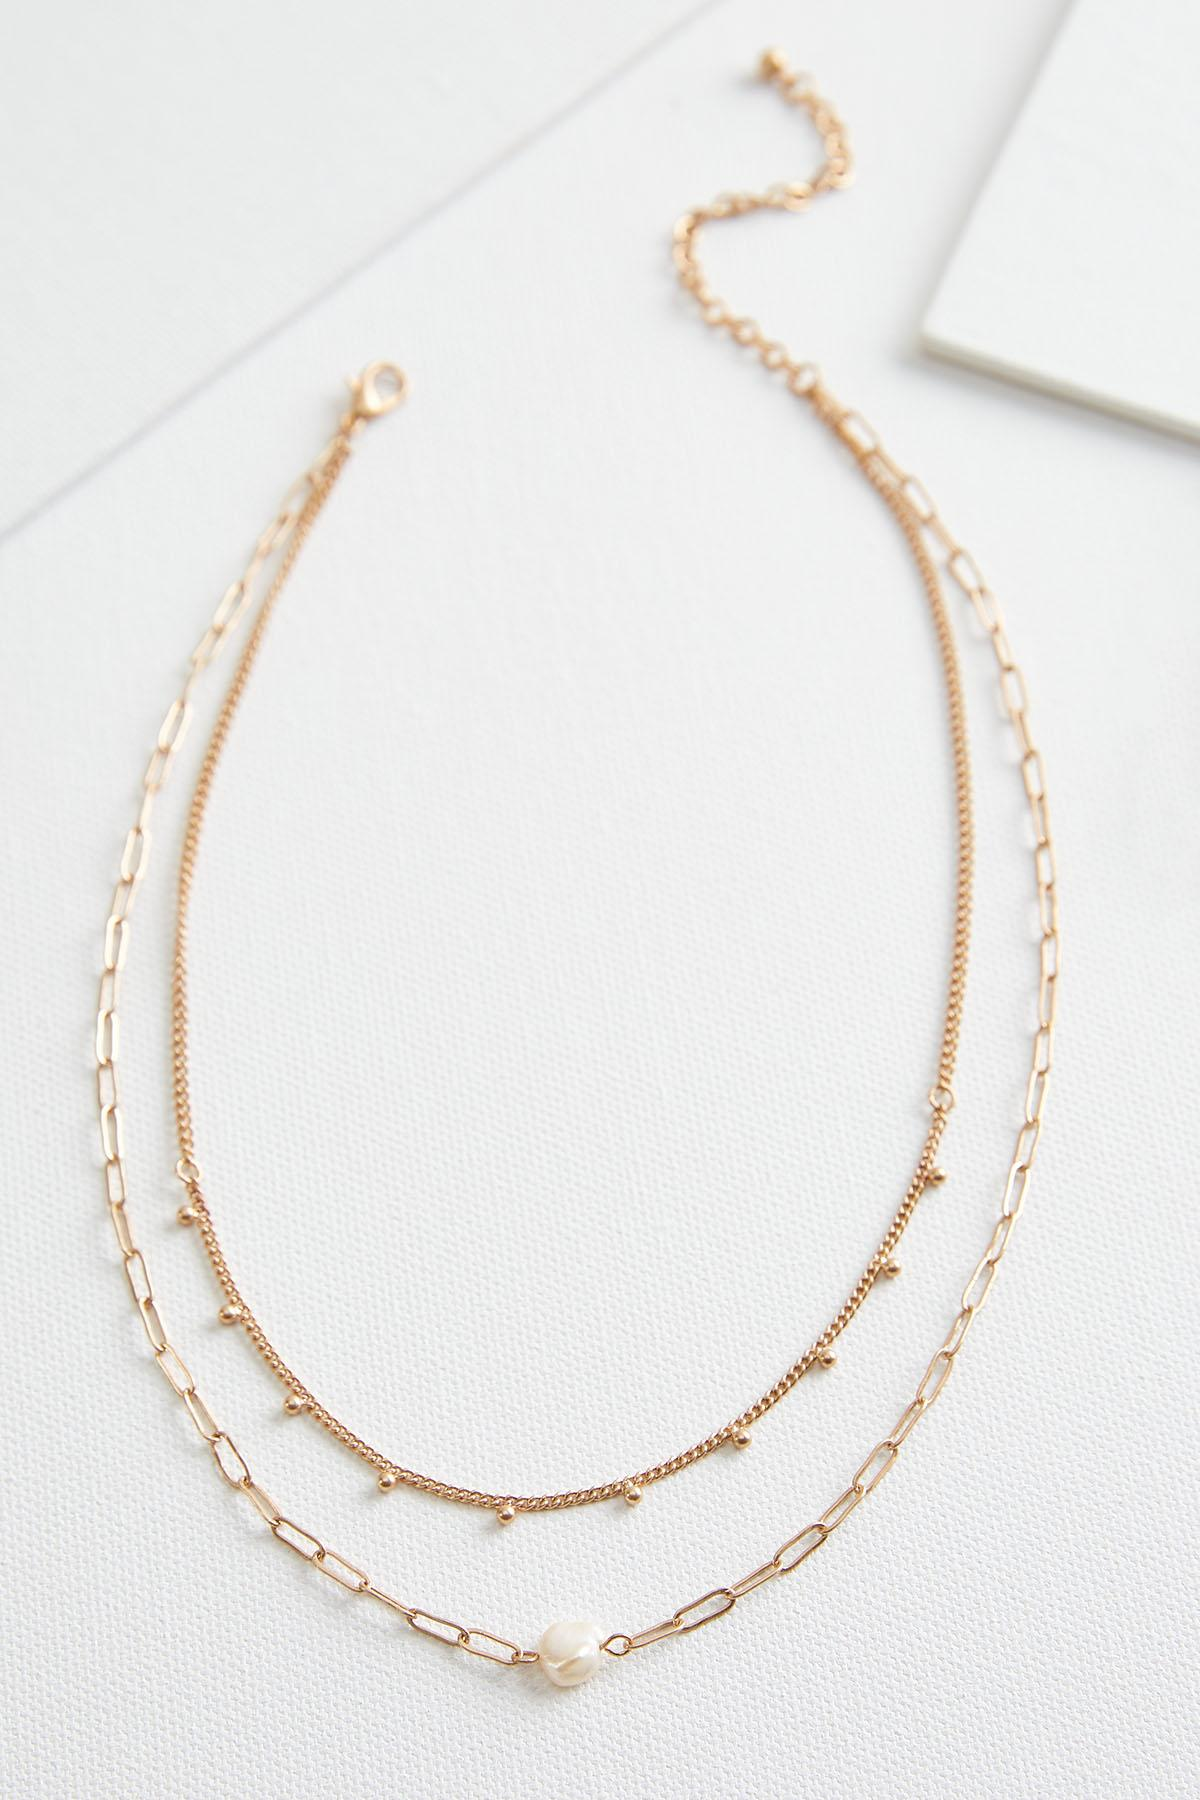 Layered Freshwater Pearl Necklace